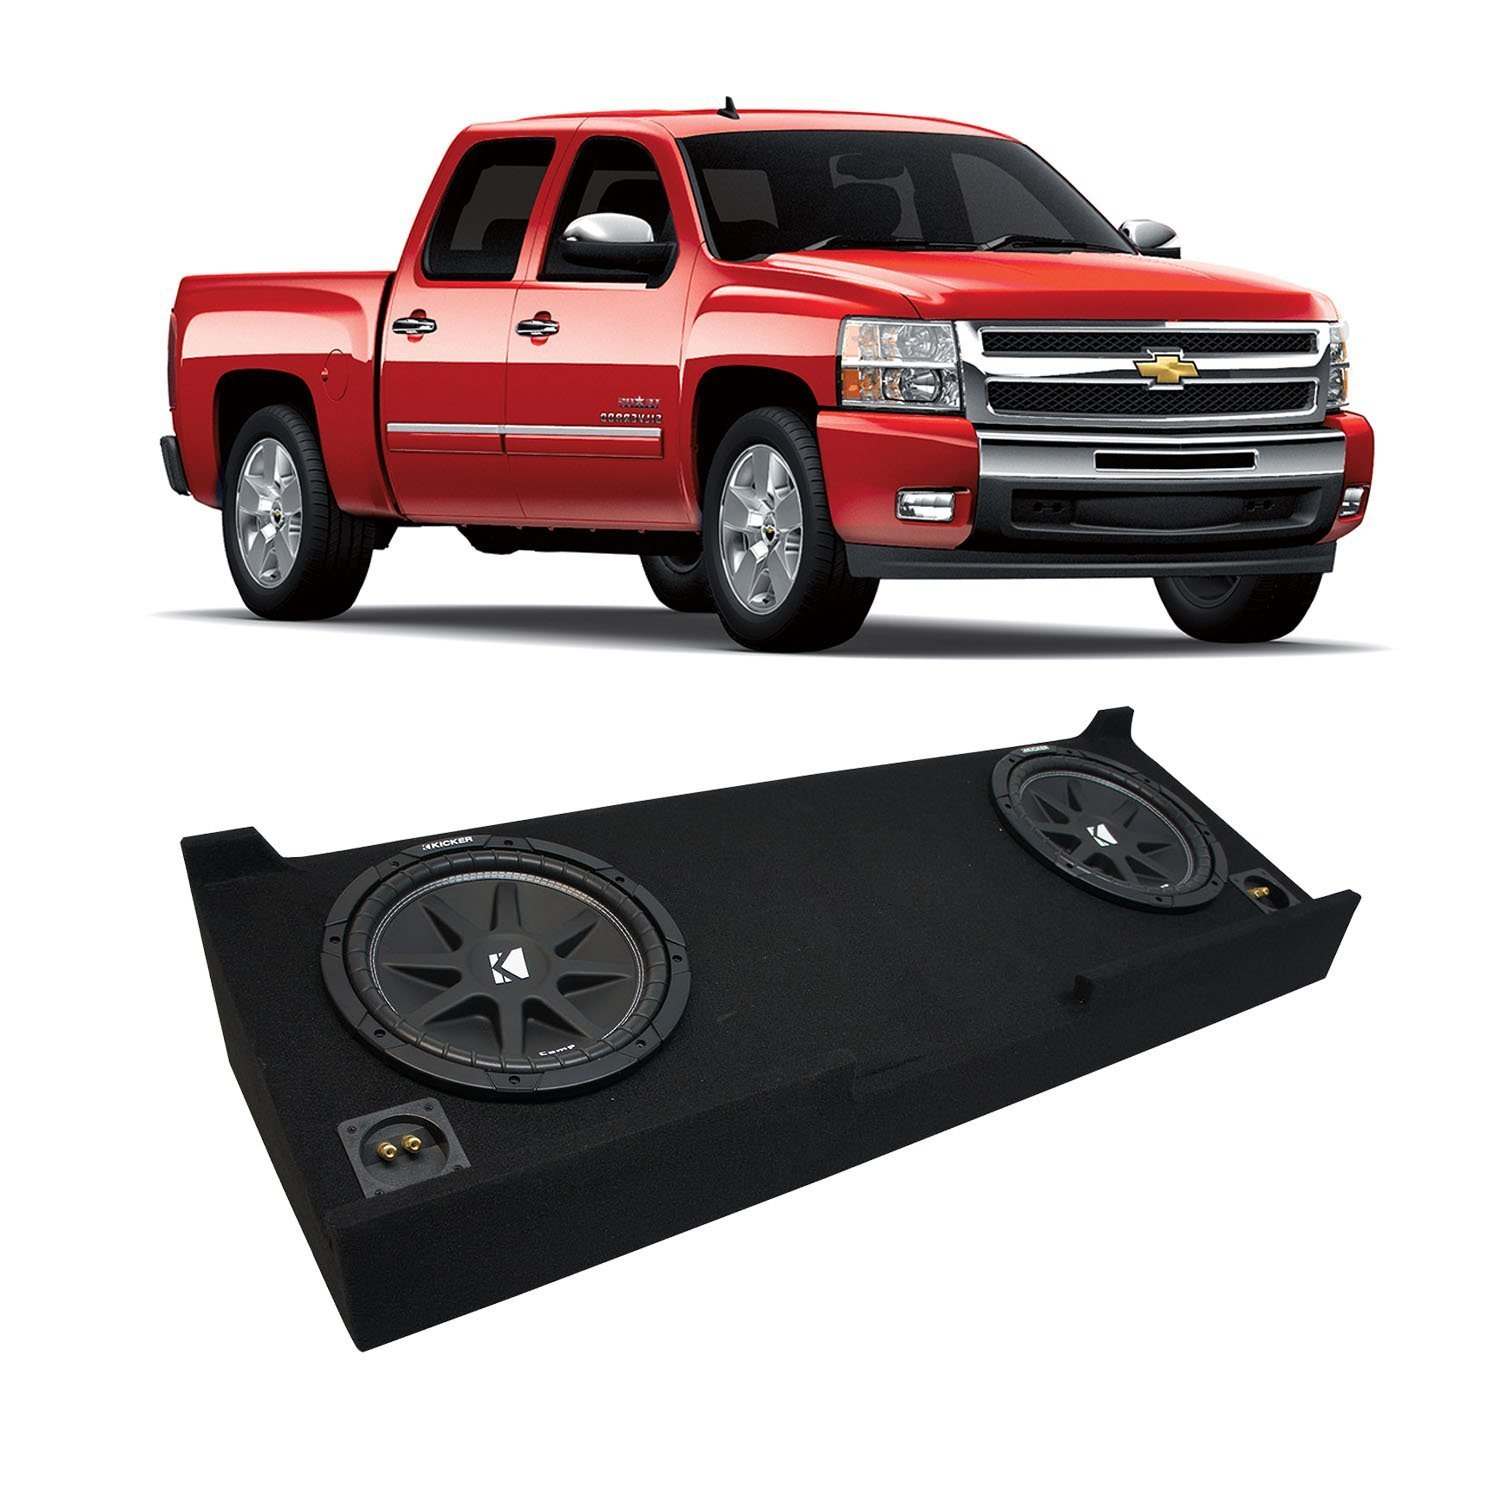 "2007-2013 Chevy Silverado Crew Cab Truck Kicker Comp C10 Dual 10"" Sub Box Enclosure - Final 2 Ohm"